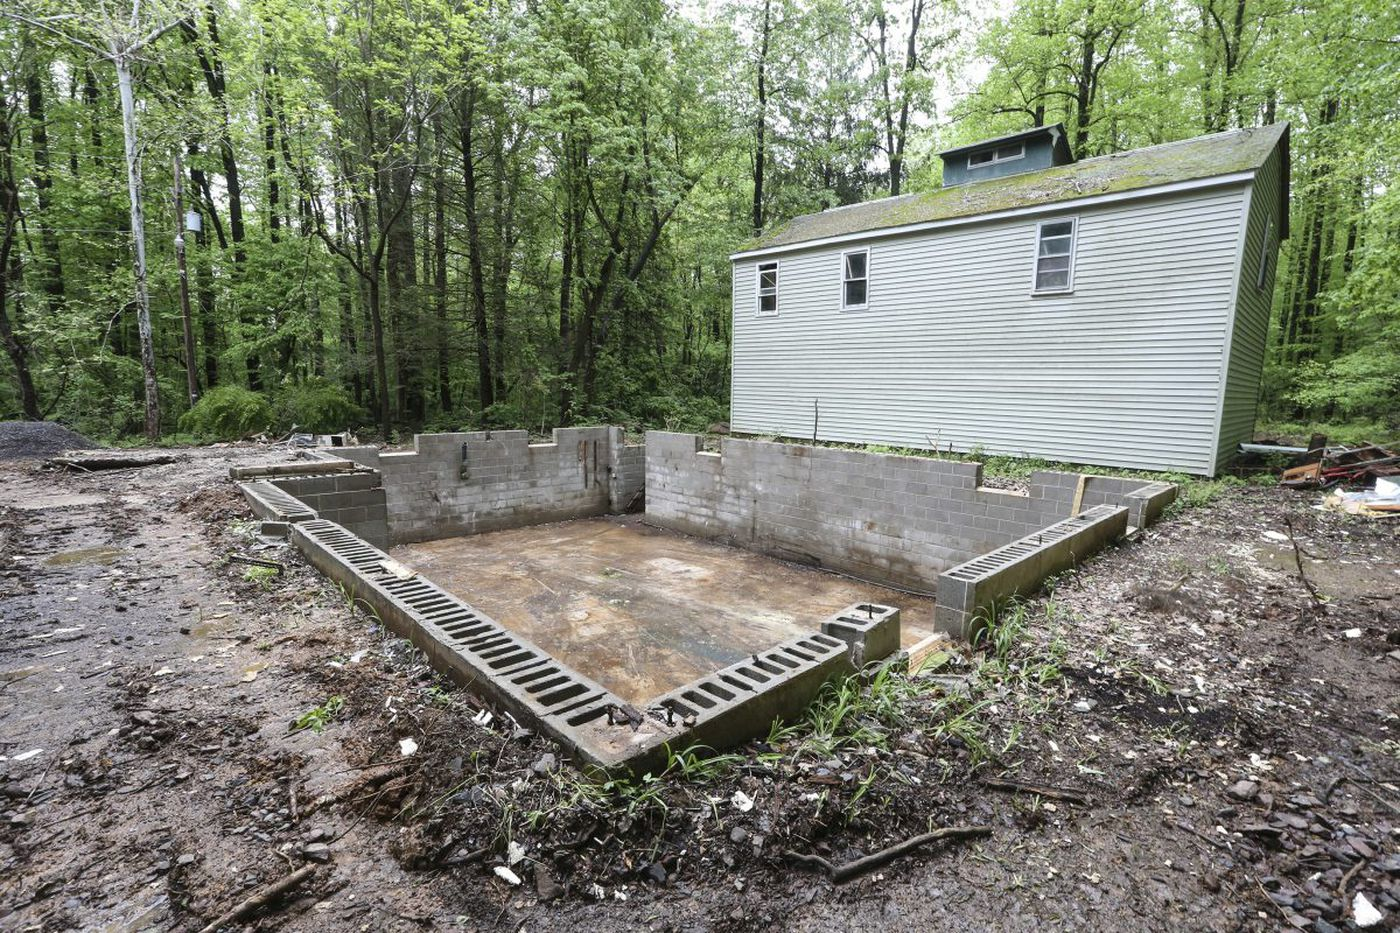 Police hope remnants of Bucks County home, once owned by a murderer, holds clues about long-missing man